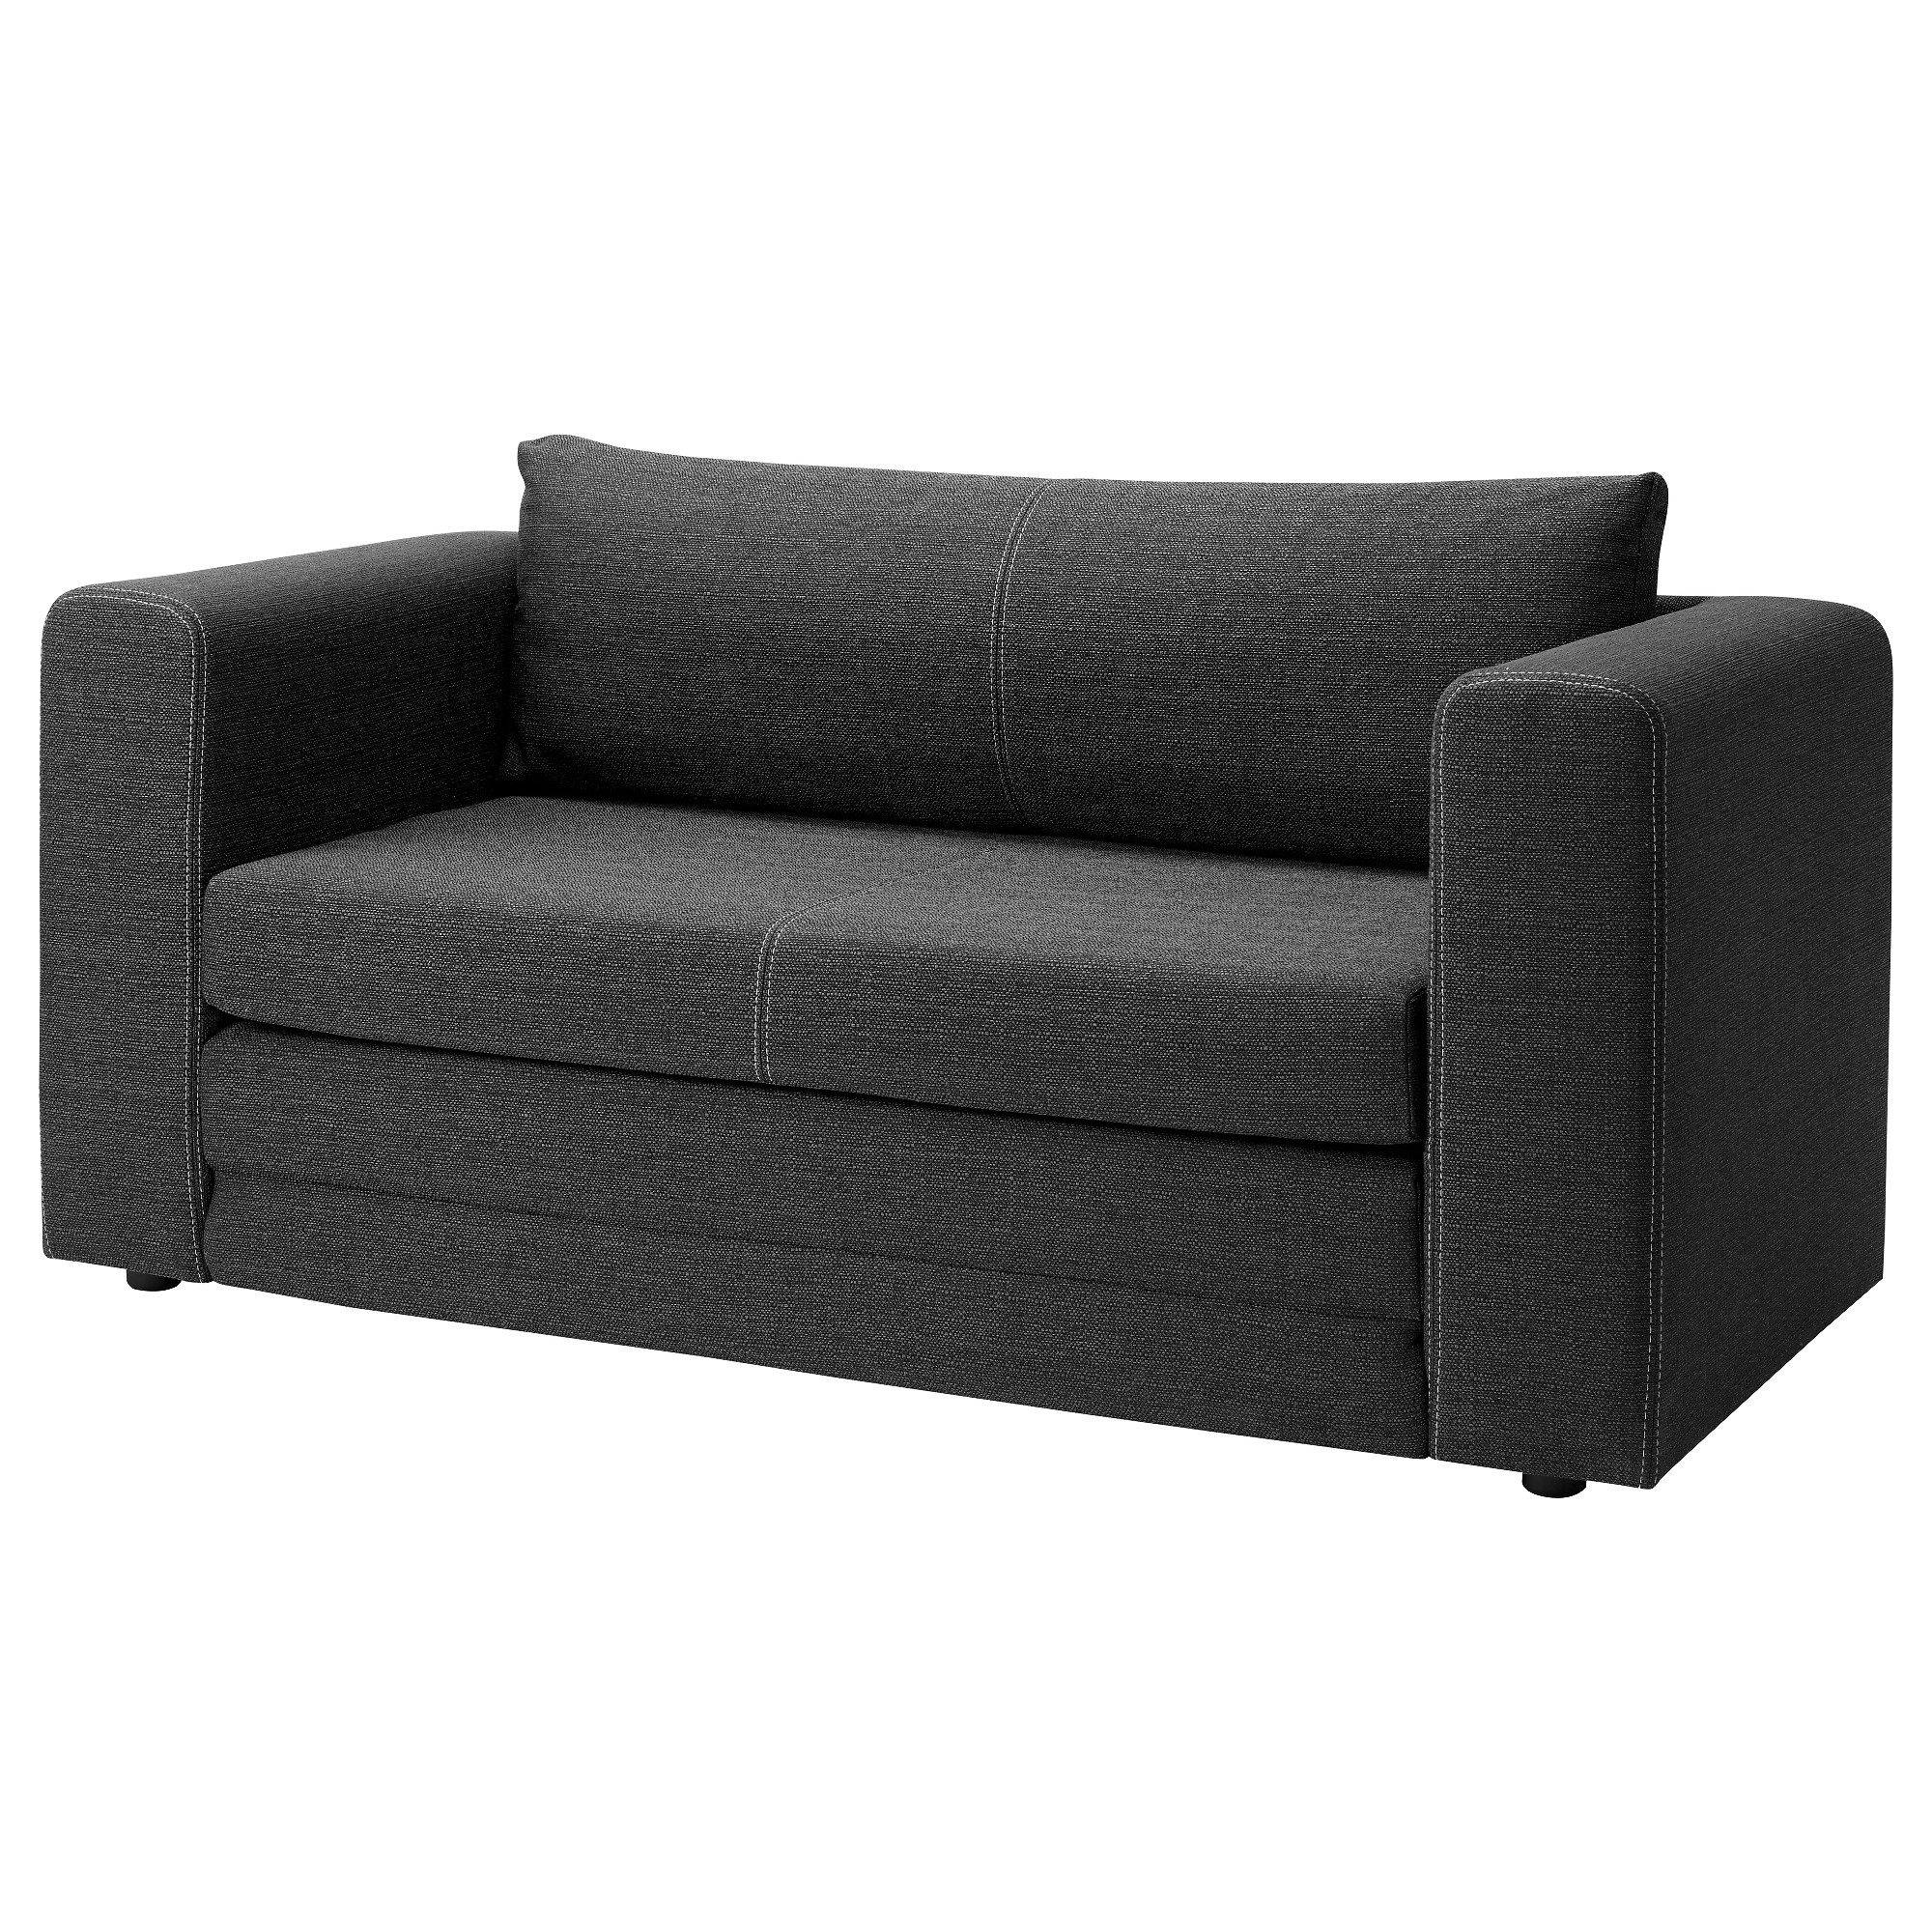 ikea schlafsofa mit bettkasten catlitterplus. Black Bedroom Furniture Sets. Home Design Ideas